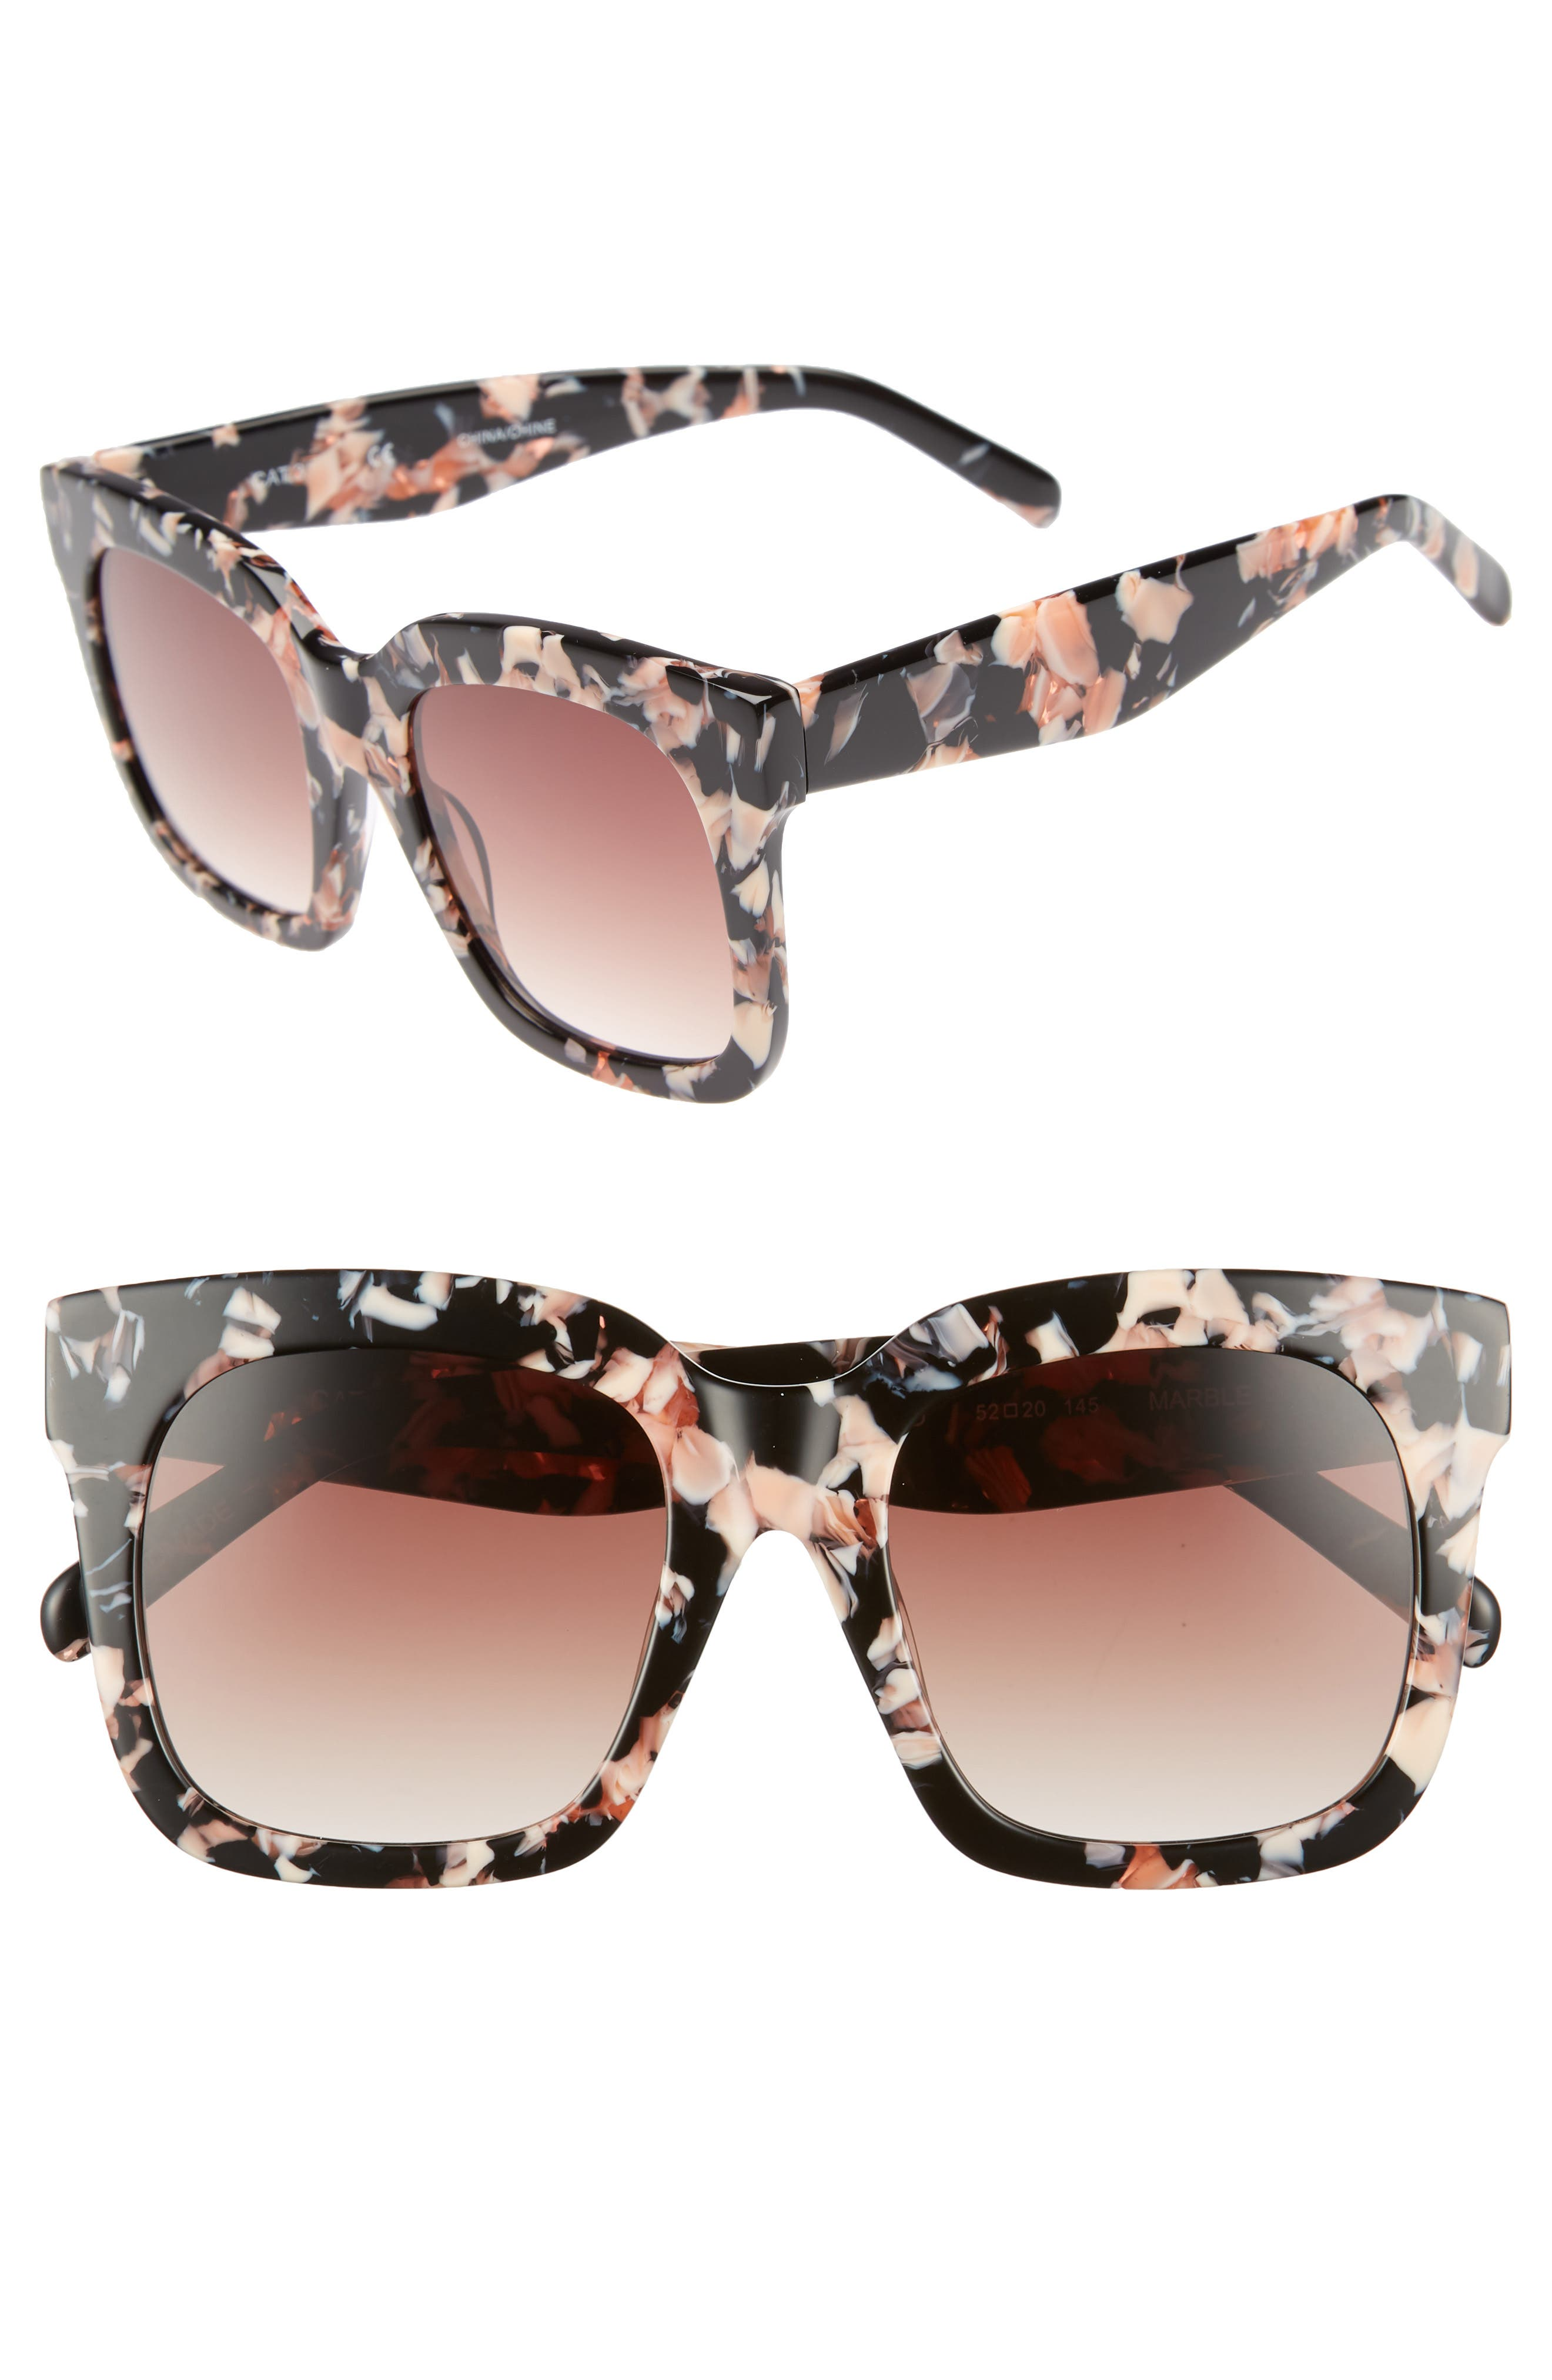 Coco 52mm Sunglasses,                         Main,                         color, Black Pink Marble